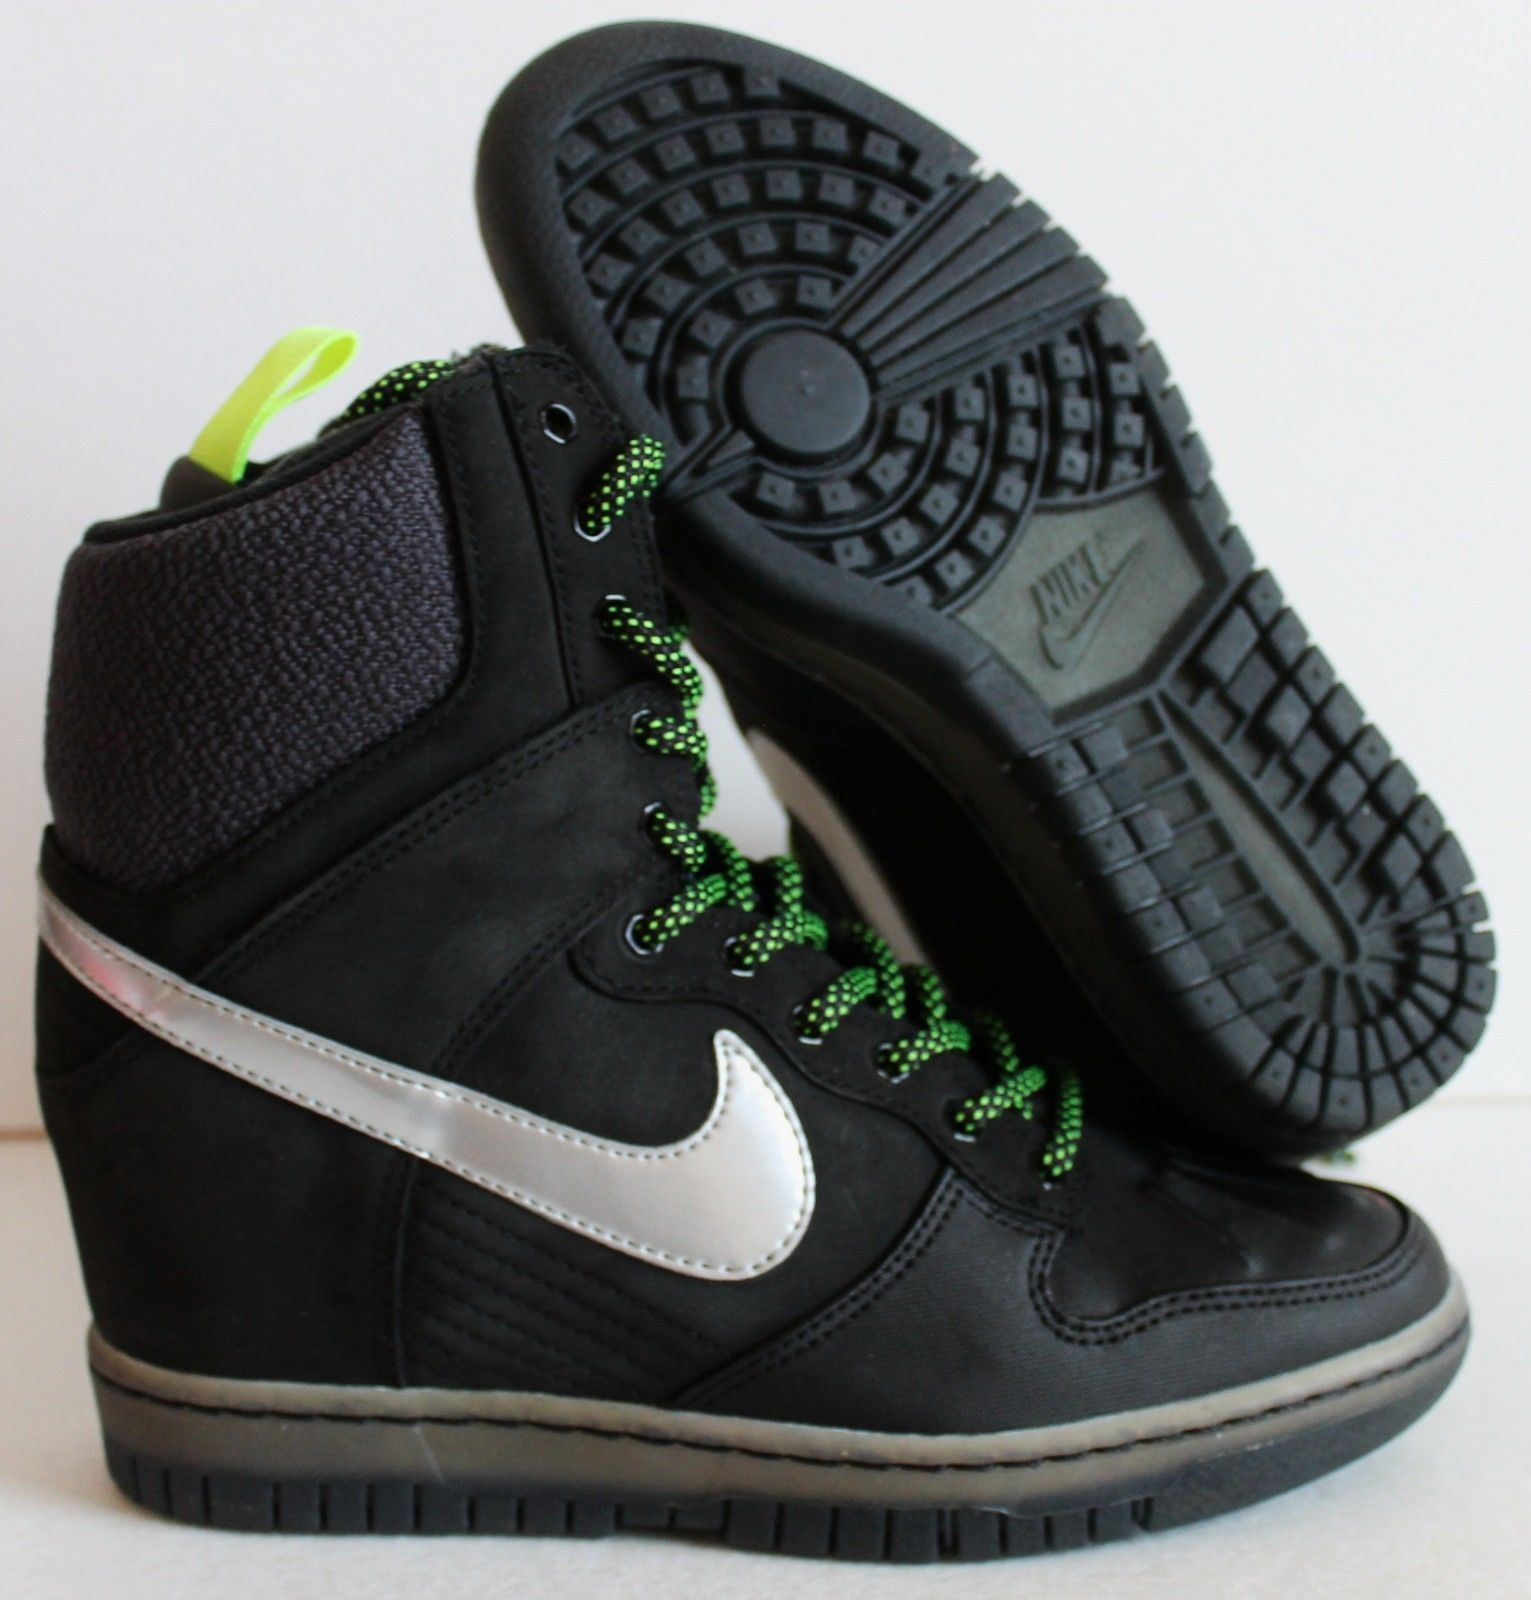 save off 54ce8 9dba6 esty runs shoes air max Nike DUNK SKY HIGH Sneakerboot 684954 001 New  Women s Black Shoes Boots Sz 7 US 109 75 Running Shoes USA Sale 2015